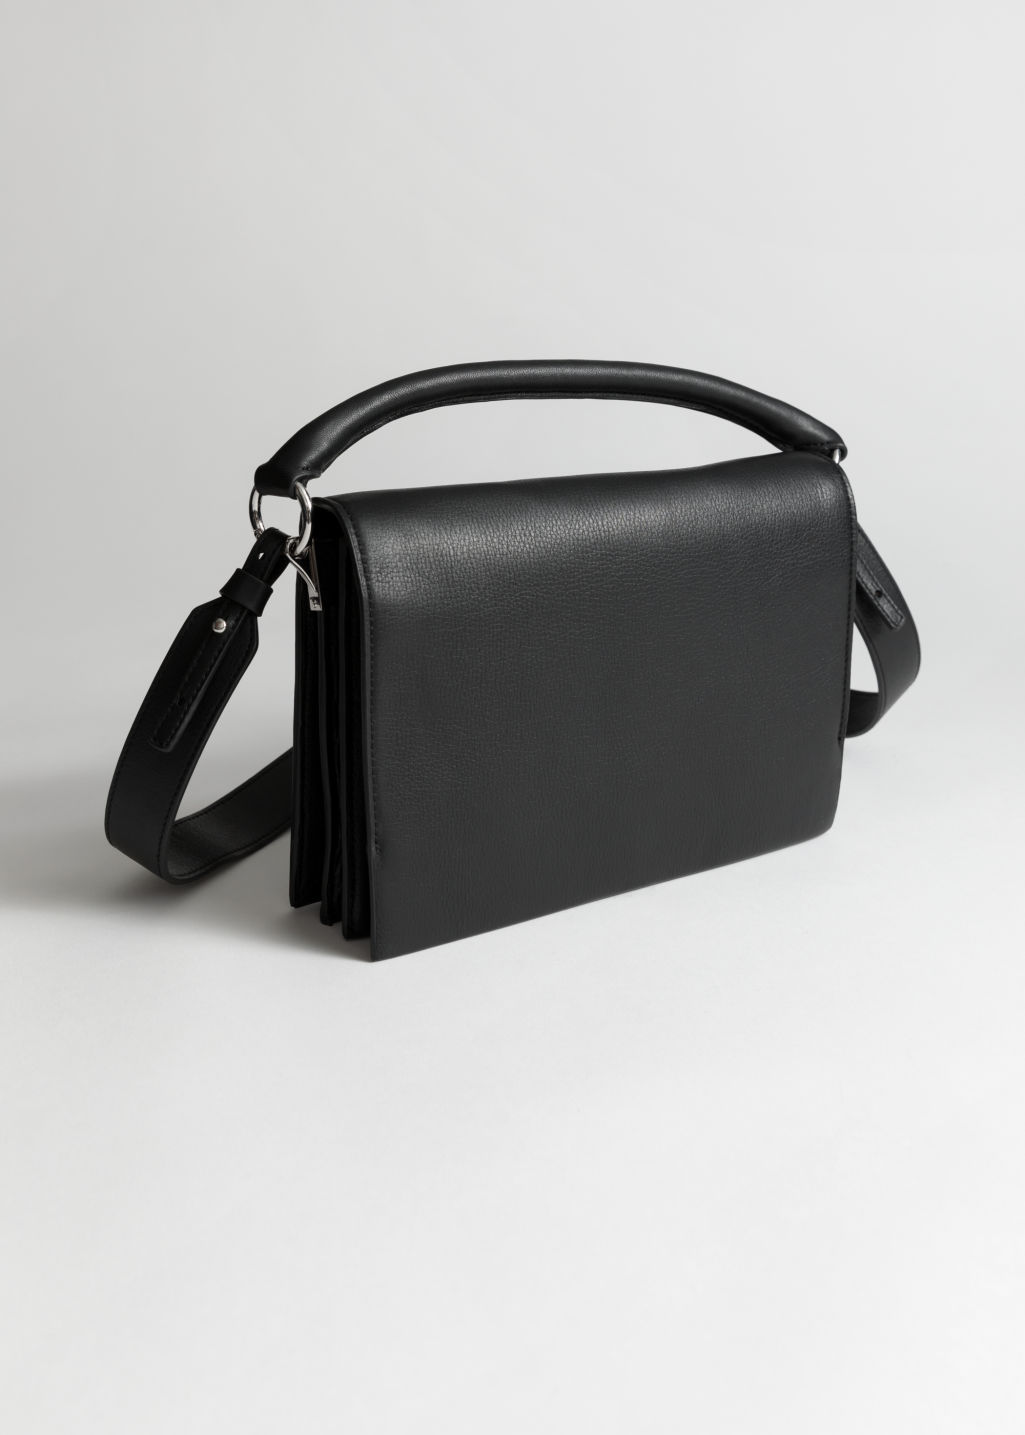 eabf281345e8 Leather Fold Over Crossbody Bag - Black - Shoulderbags -   Other ...